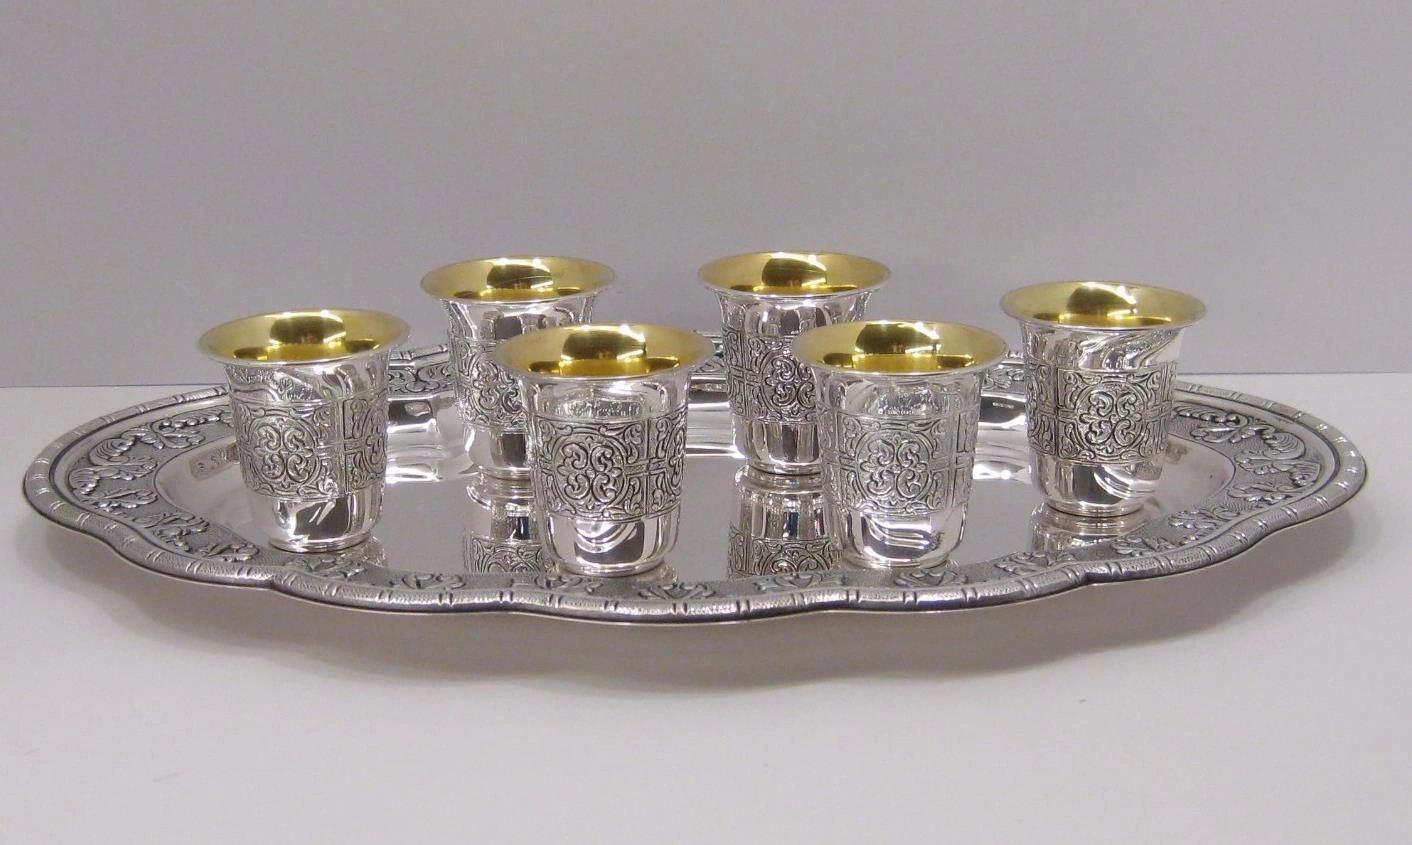 FINE 925 STERLING SILVER & GOLD PLATED CHASED 6 LIQUOR SET CUP & TRAY